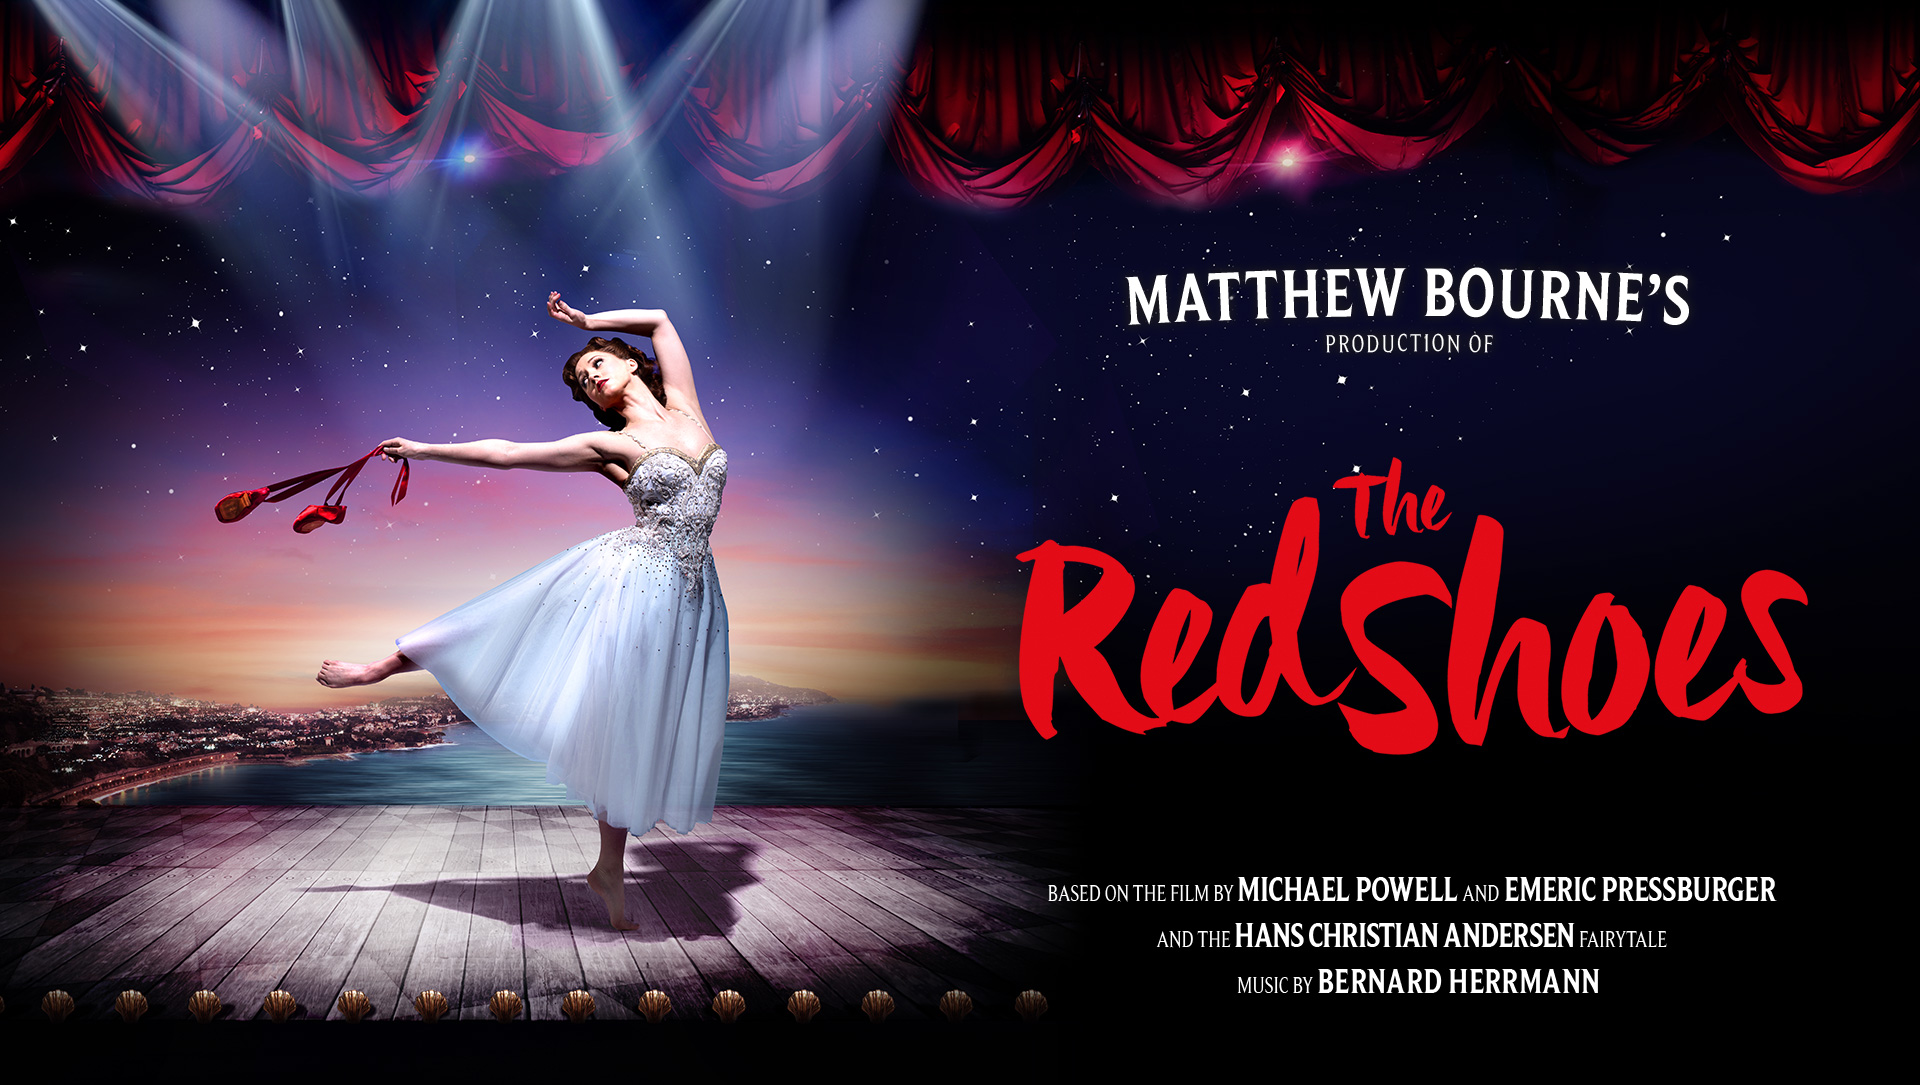 matthew-bournes-production-of-the-red-shoes